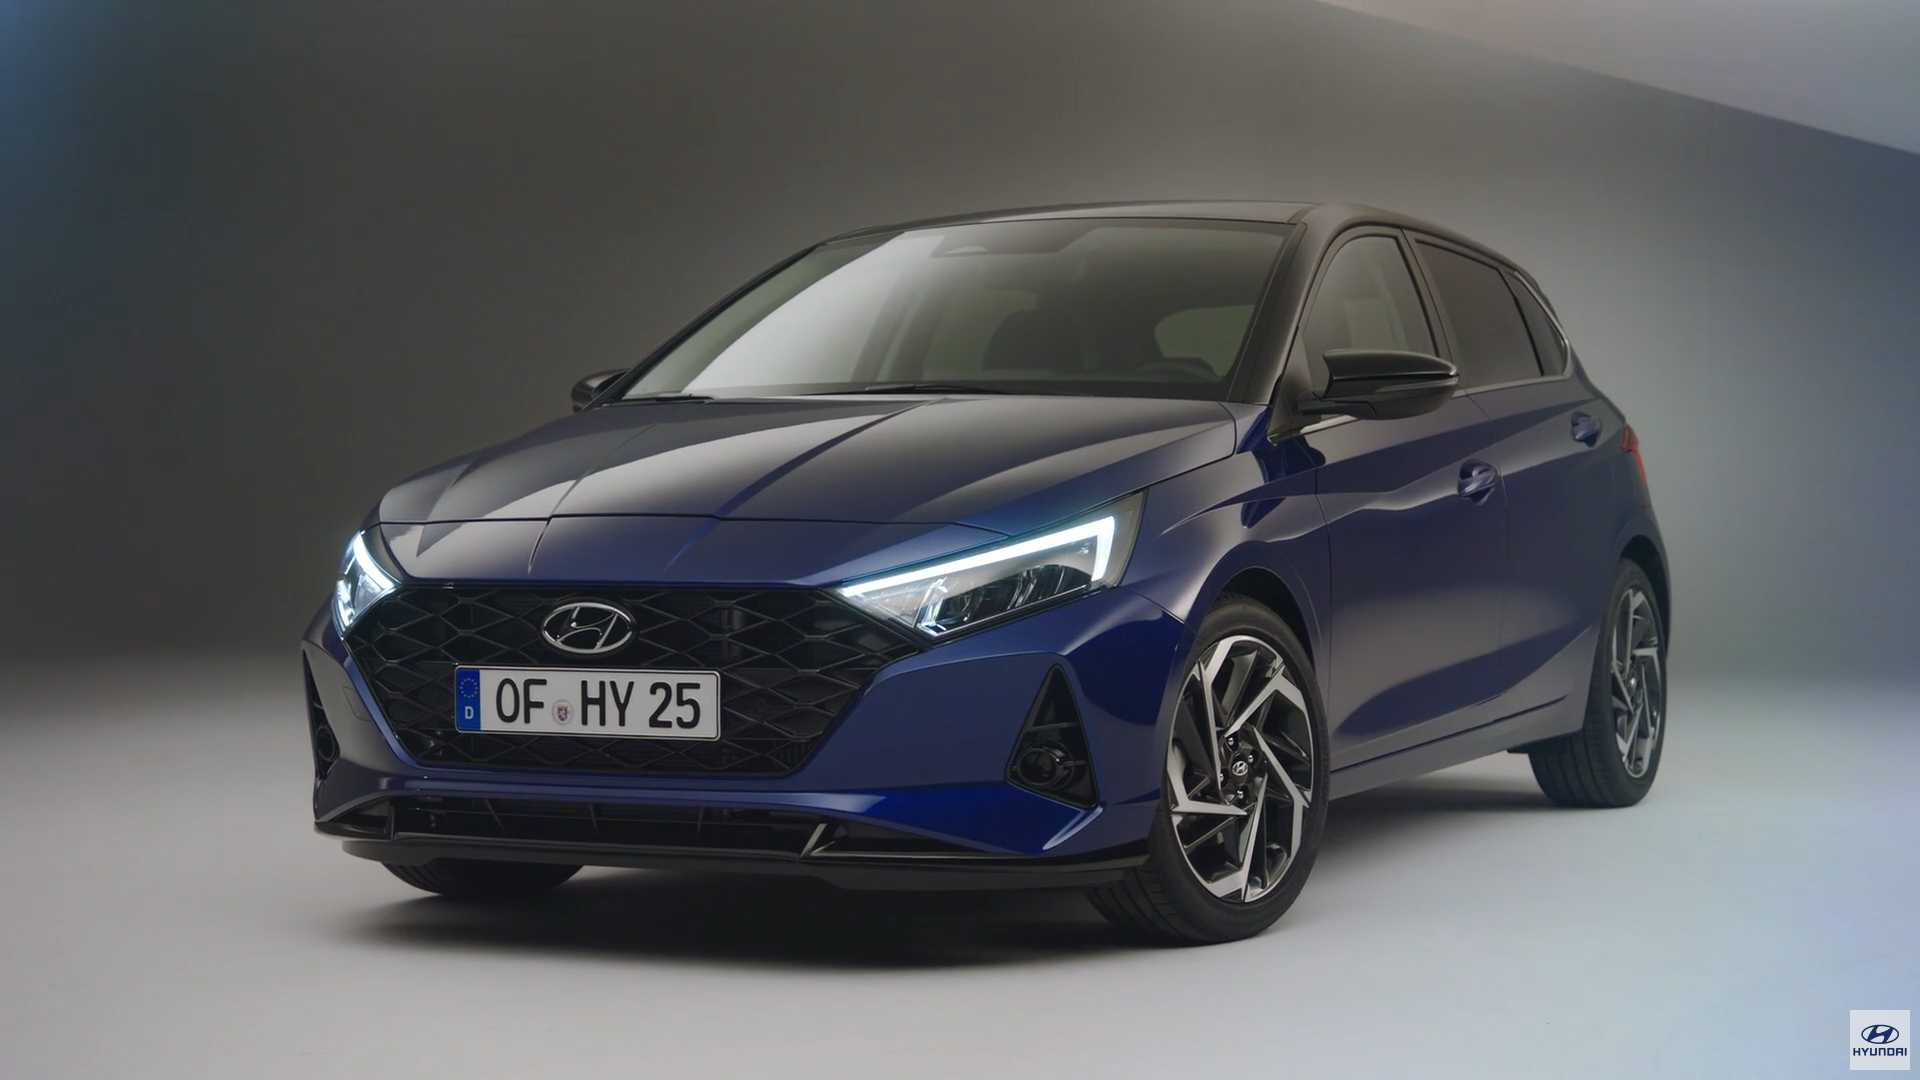 2021-hyundai-i20-screenshot